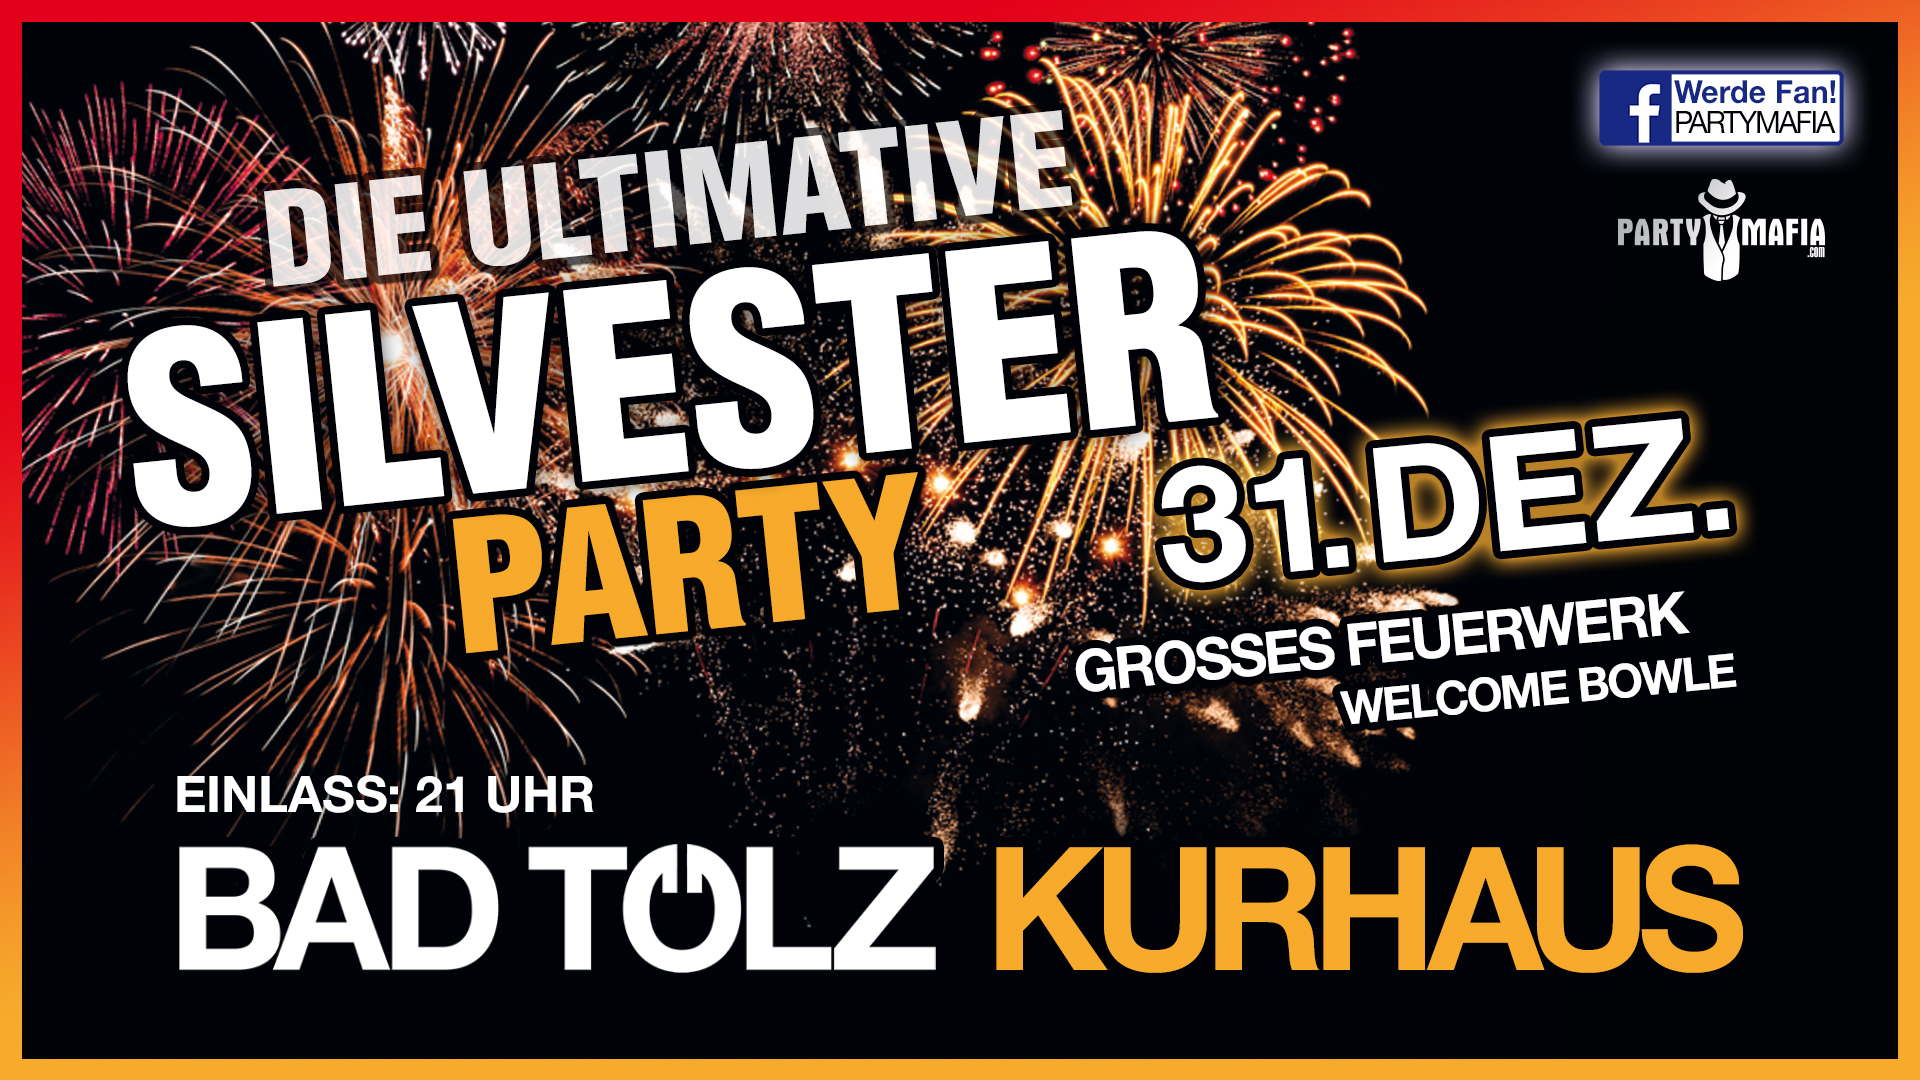 Die ultimative Silvesterparty 2019